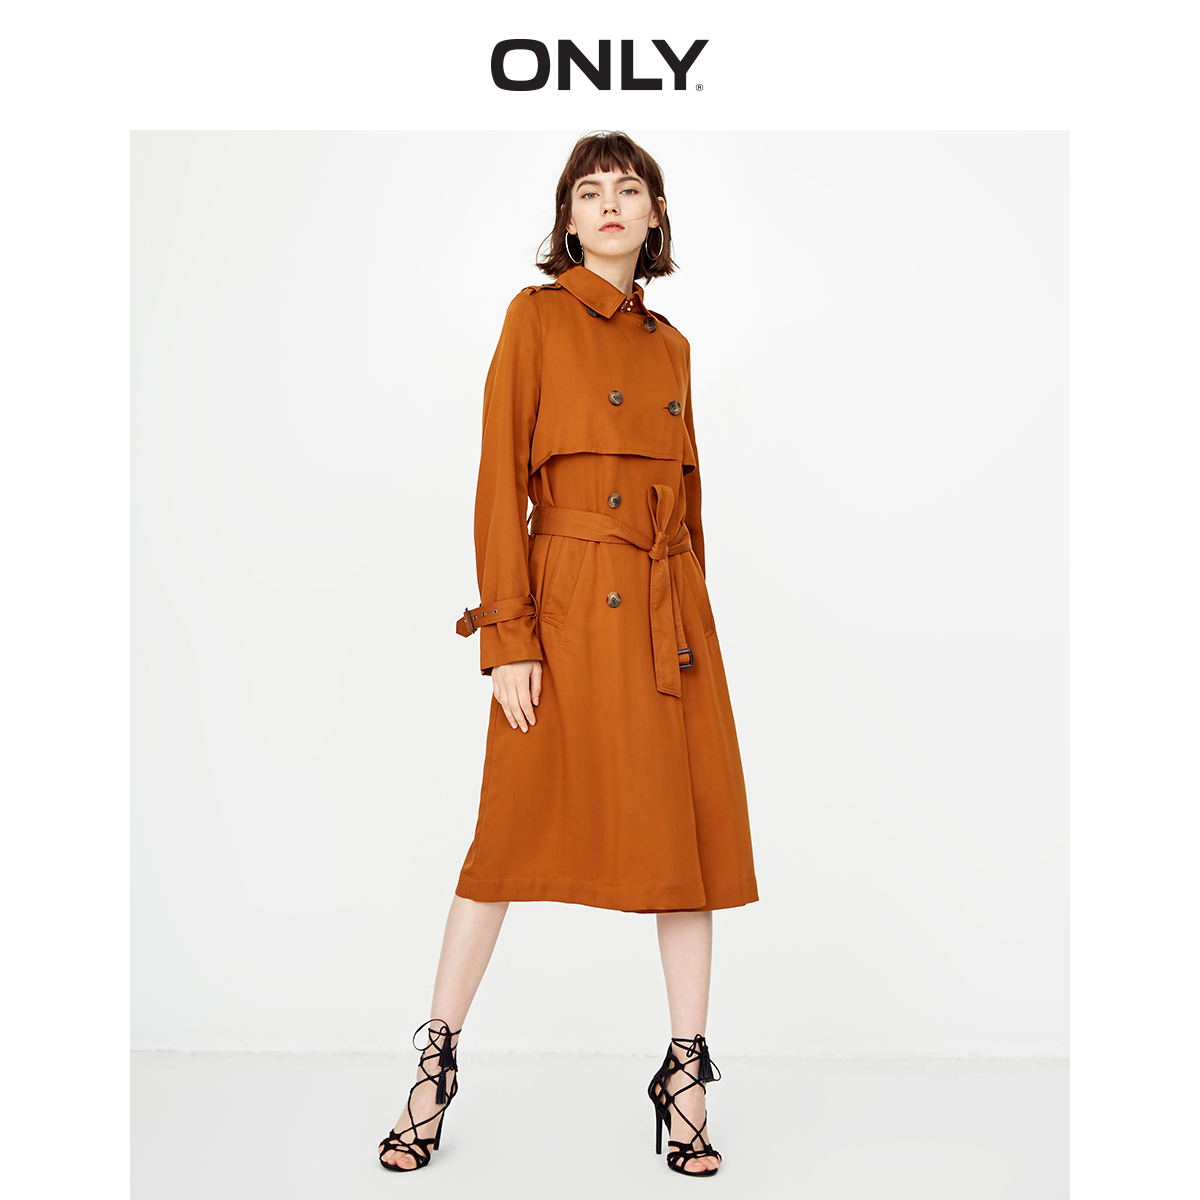 ONLY Women's Double-breasted Lace-up Cinched Waist Wind Coat | 118336508